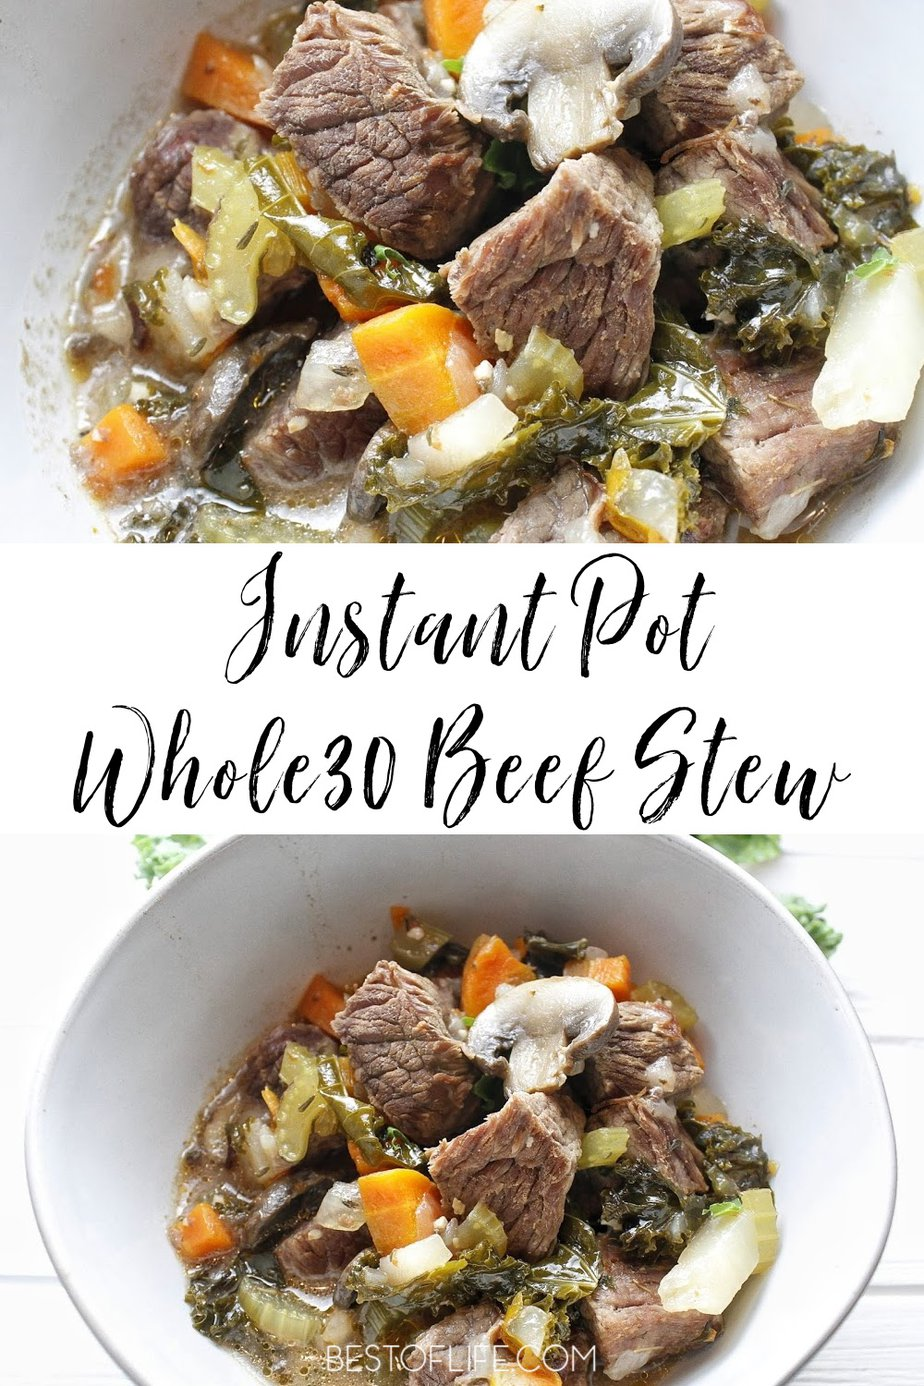 Whole30 Instant Pot beef stew is one a healthy meal that just brings feelings of warmth and comfort. Instant Pot Stew Recipes | Instant Pot Recipes with Beef | Beef Instant Pot Recipe | Instant Pot Soup Recipes | Instant Pot Stew Meat | Stew Meat Recipe | Beef Stew Recipe Pressure Cooker #instantpot #beef via @thebestoflife